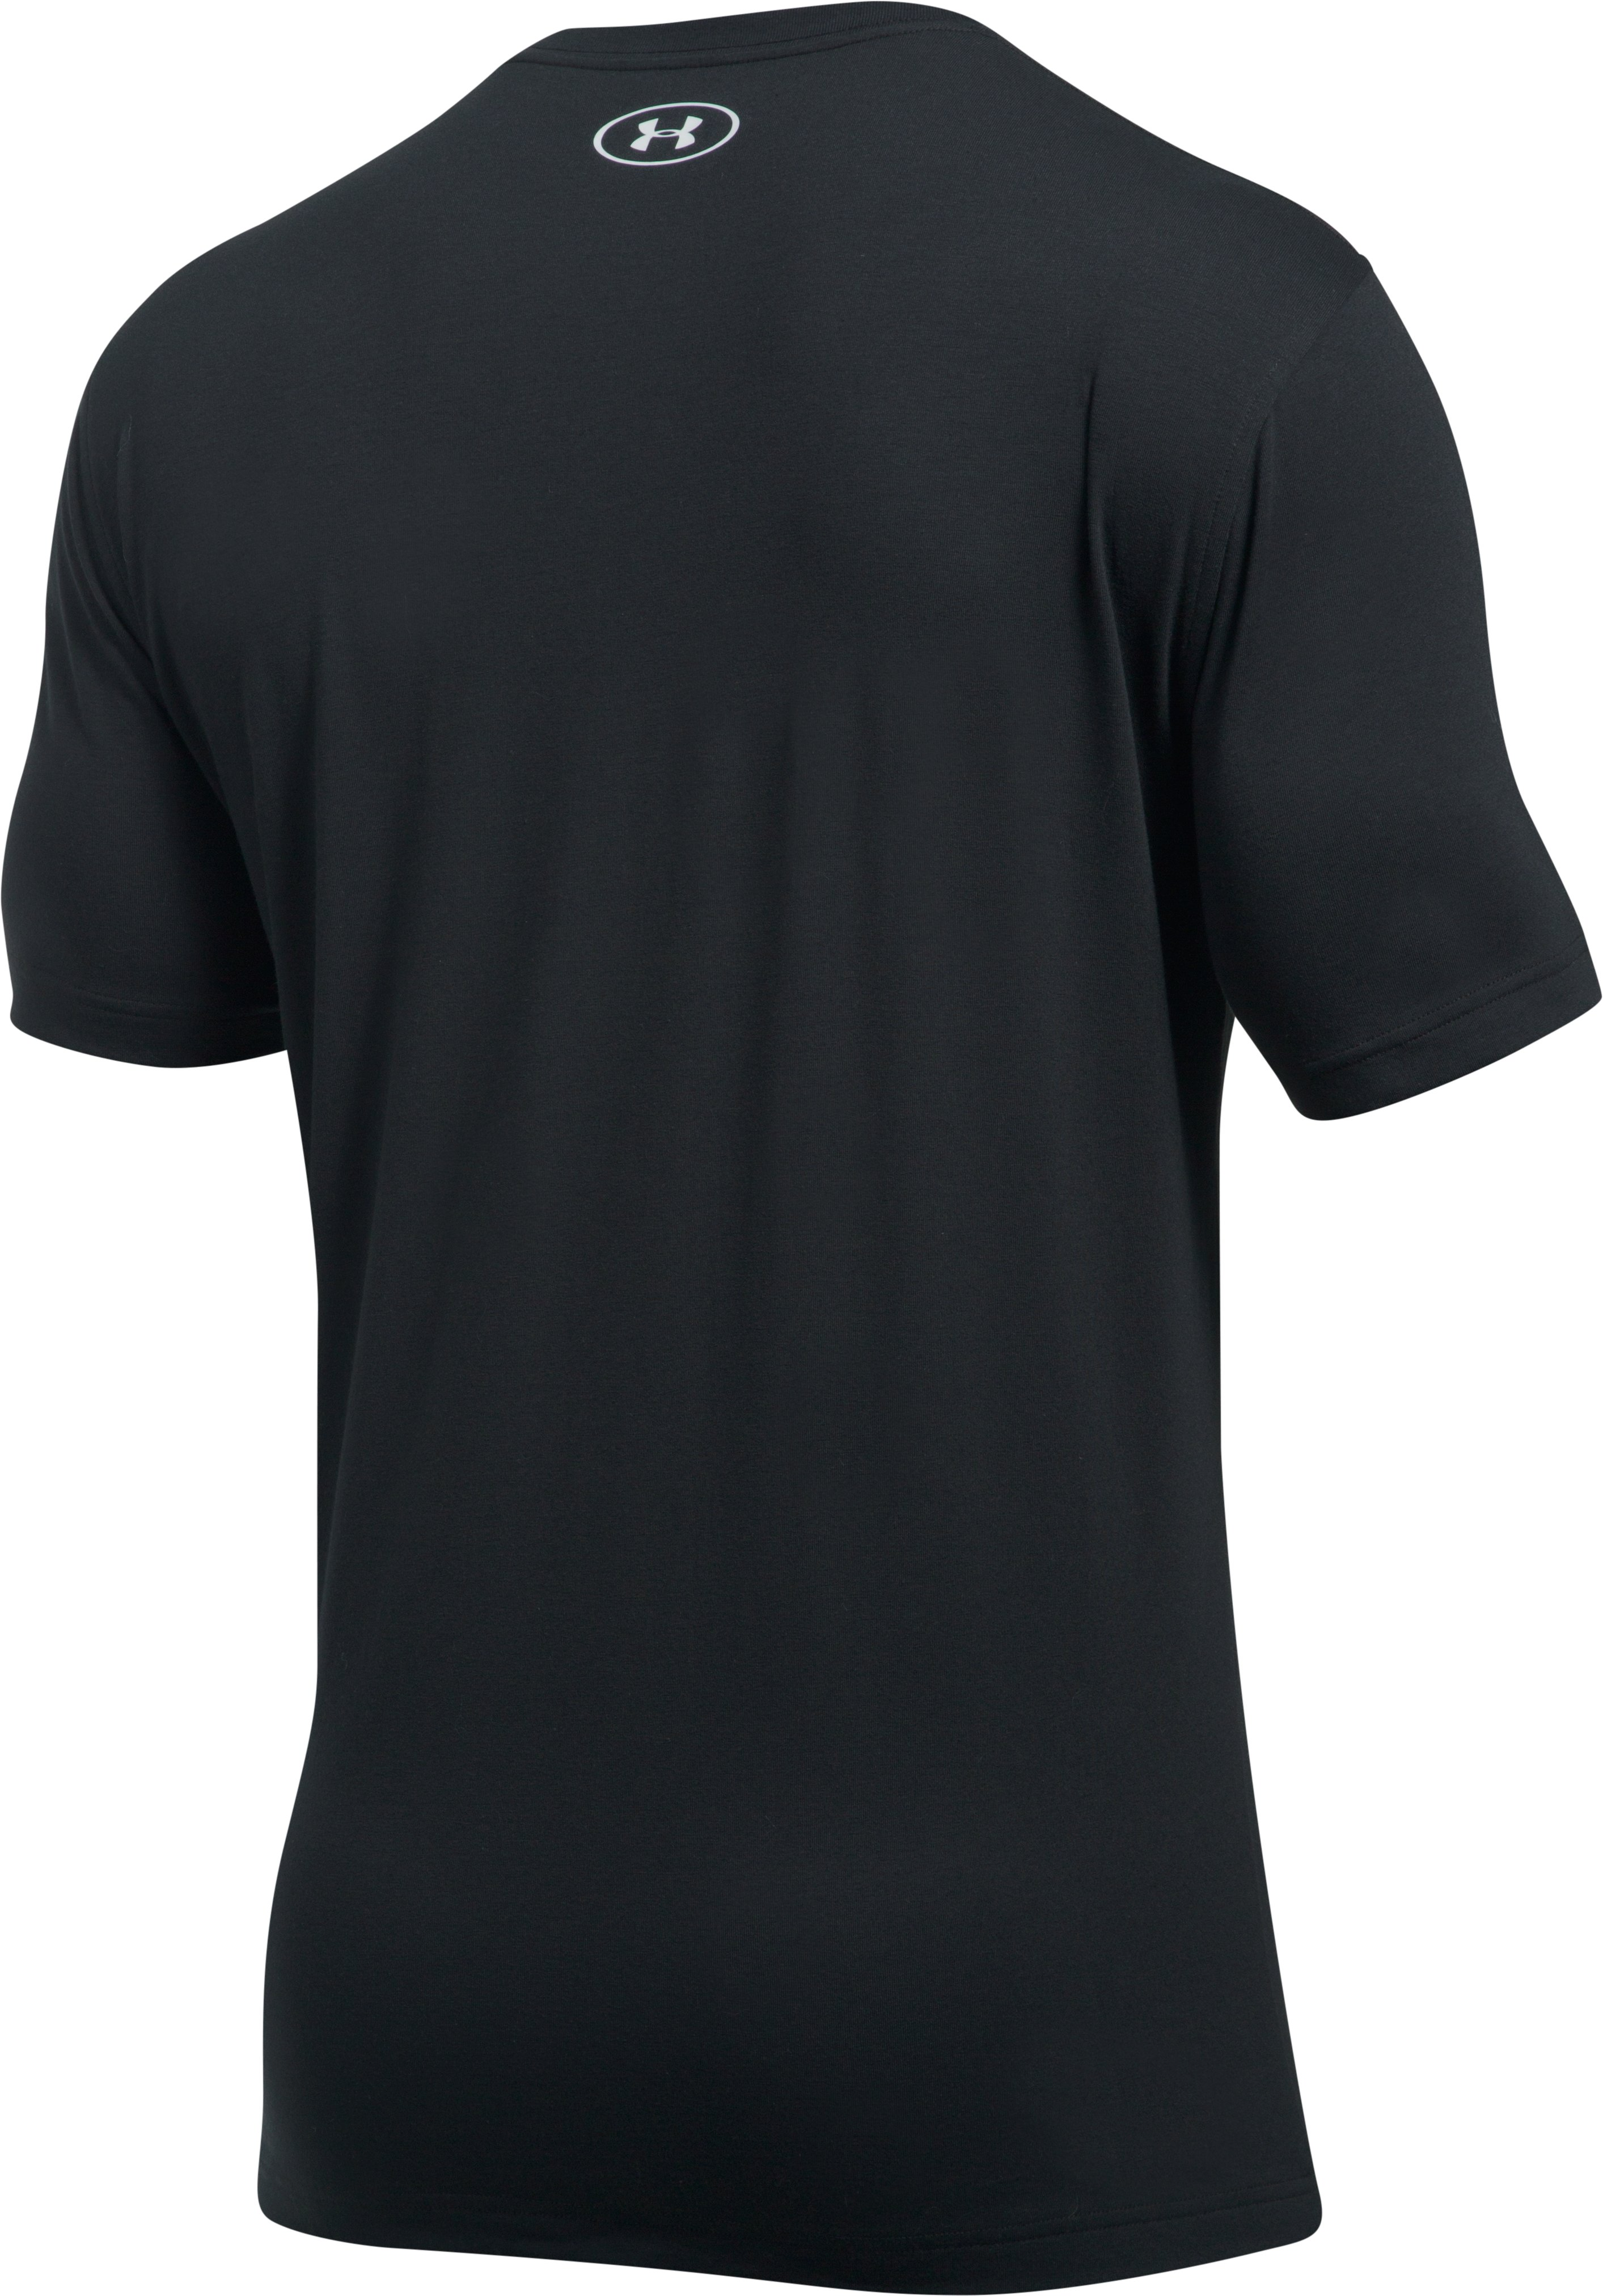 Men's Ridge Reaper® Pocket T-Shirt, Black